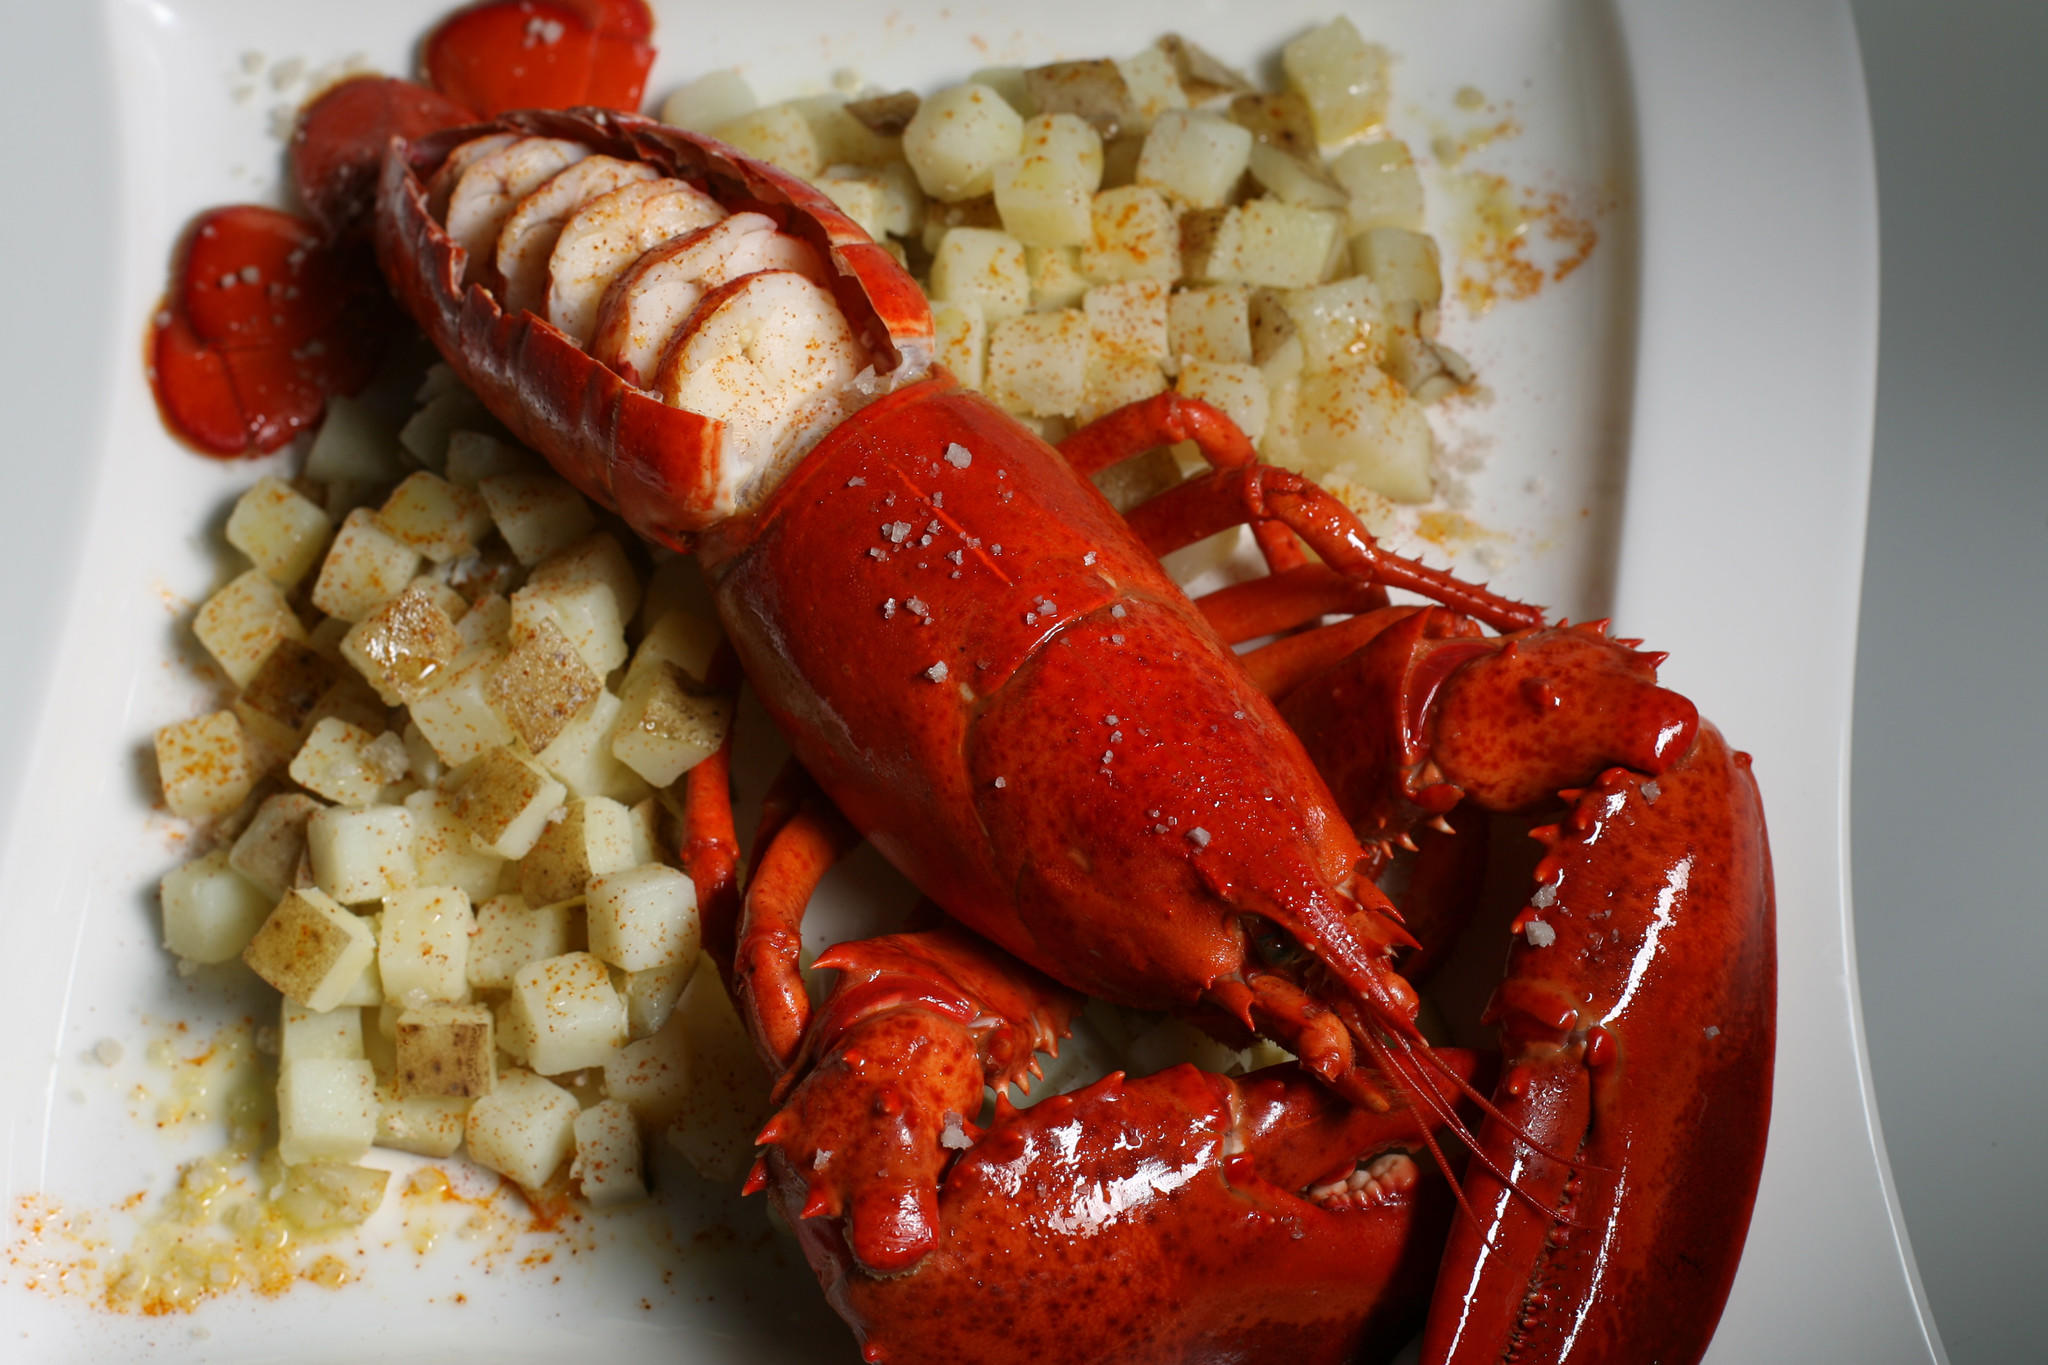 Bogavante a la gallega (Galician lobster)